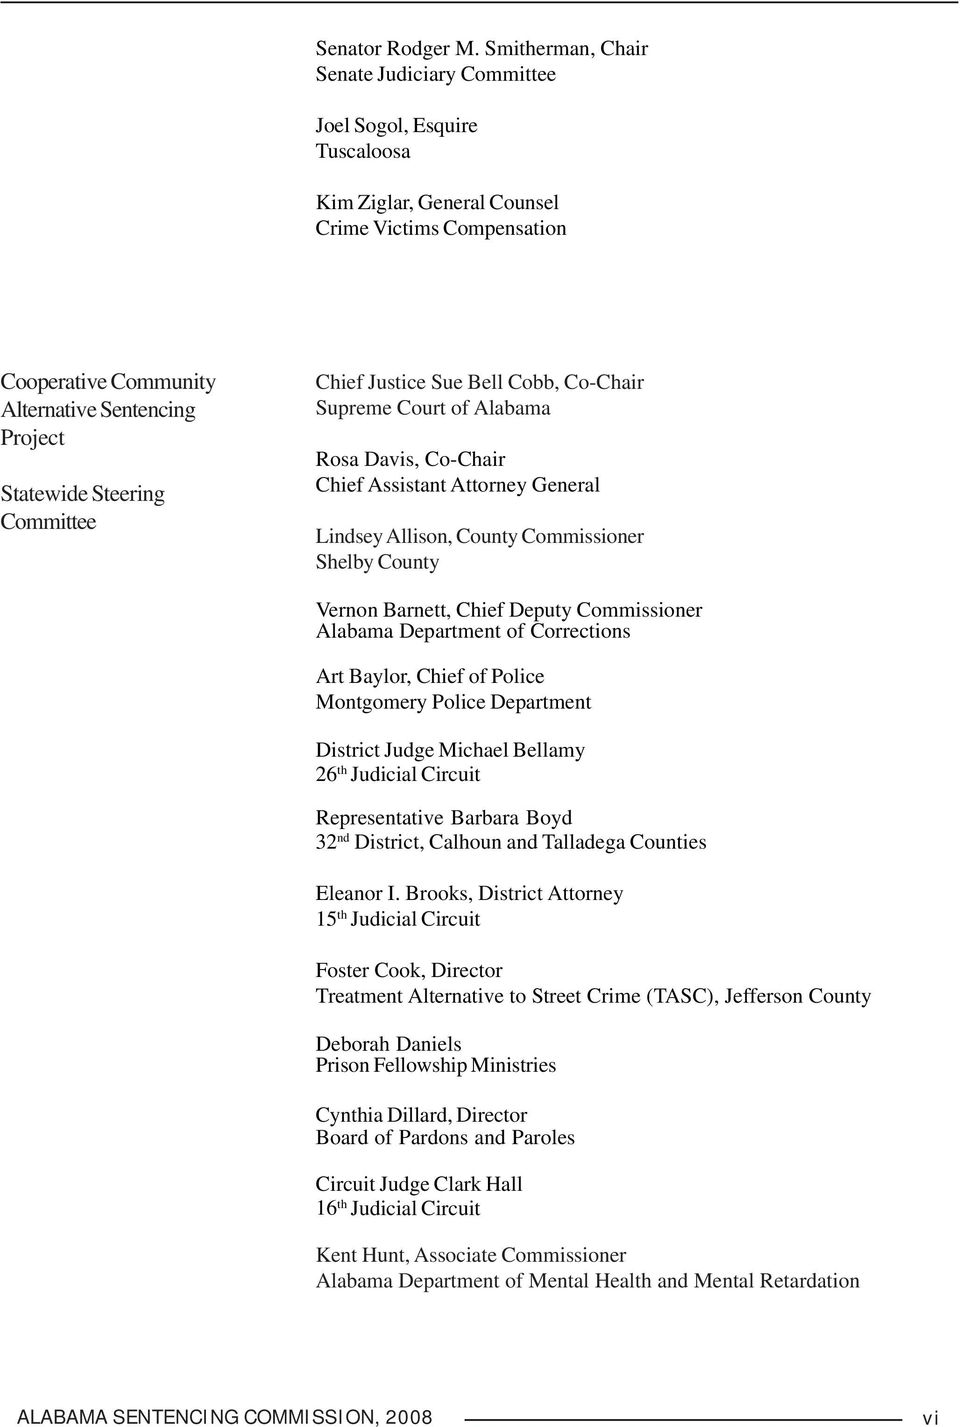 Alabama Sentencing Commission - PDF